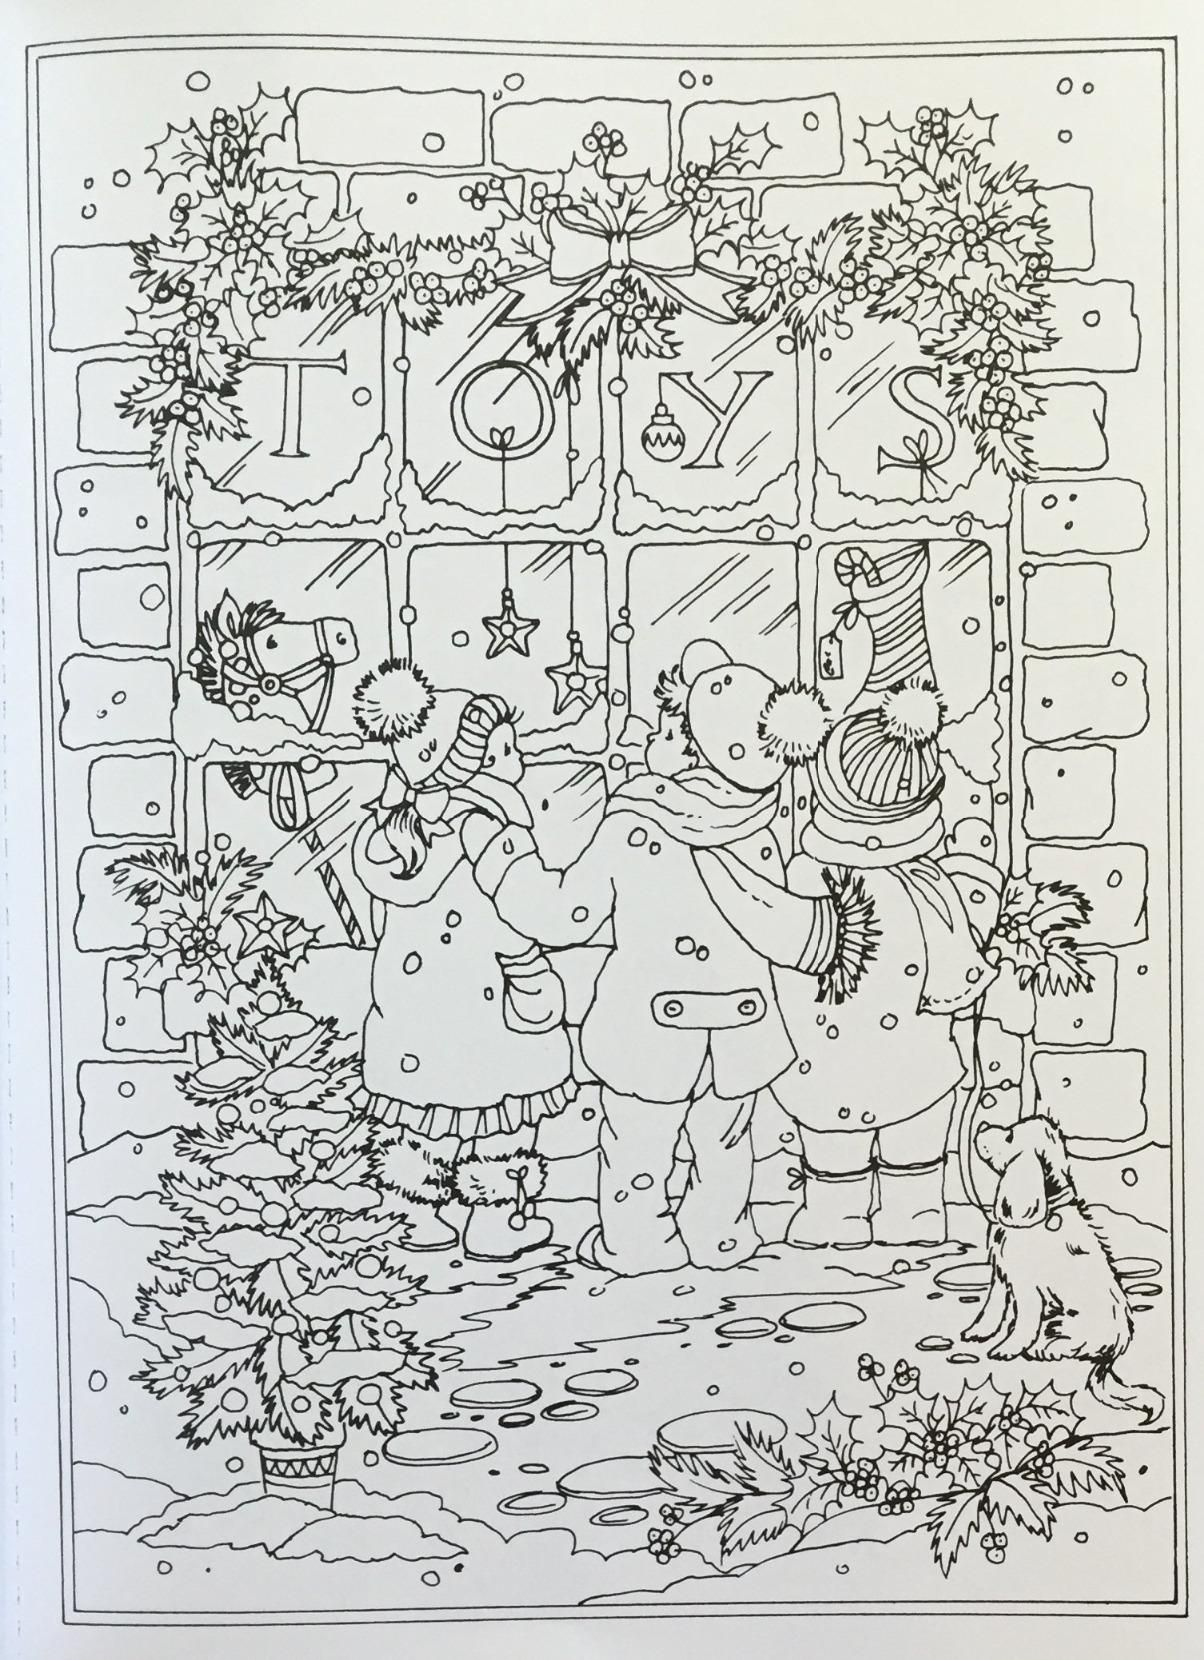 Coloring pages for donna flor - Amazon Com Creative Haven Winter Wonderland Coloring Book Adult Coloring 9780486805016